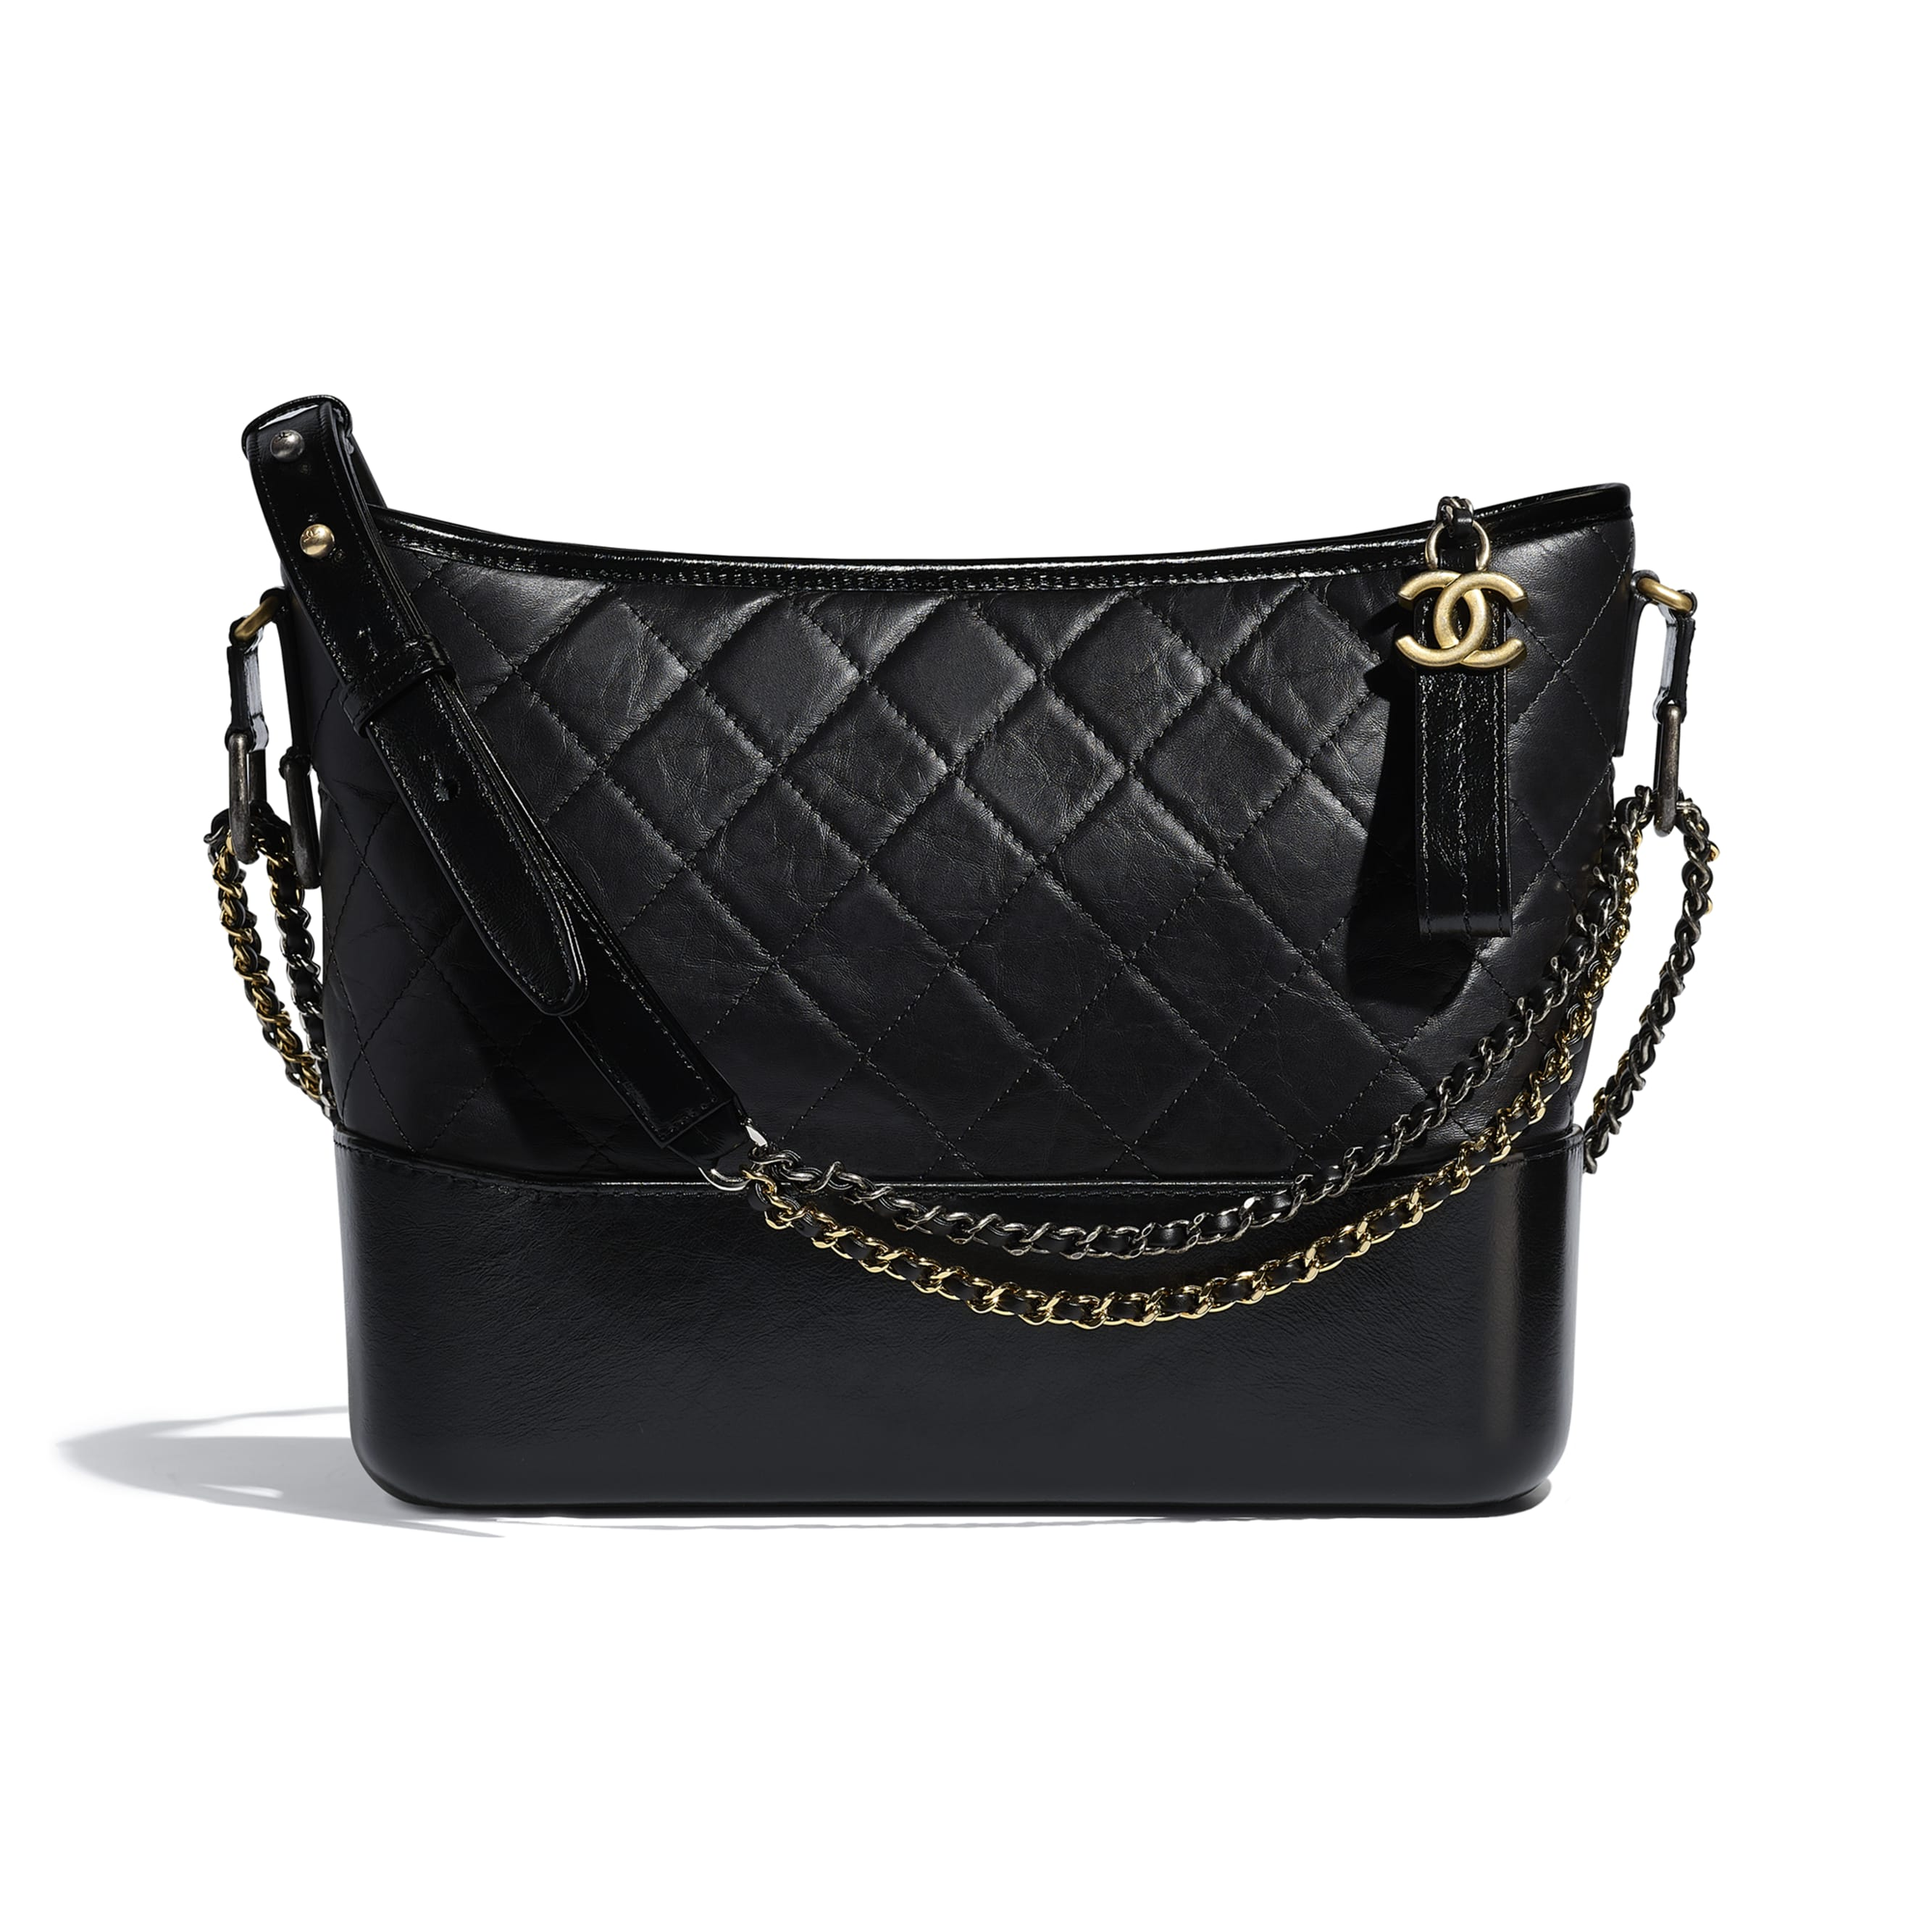 CHANEL'S GABRIELLE Large Hobo Bag - Black - Aged Calfskin, Smooth Calfskin, Gold-Tone, Silver-Tone & Ruthenium-Finish Metal - CHANEL - Default view - see standard sized version